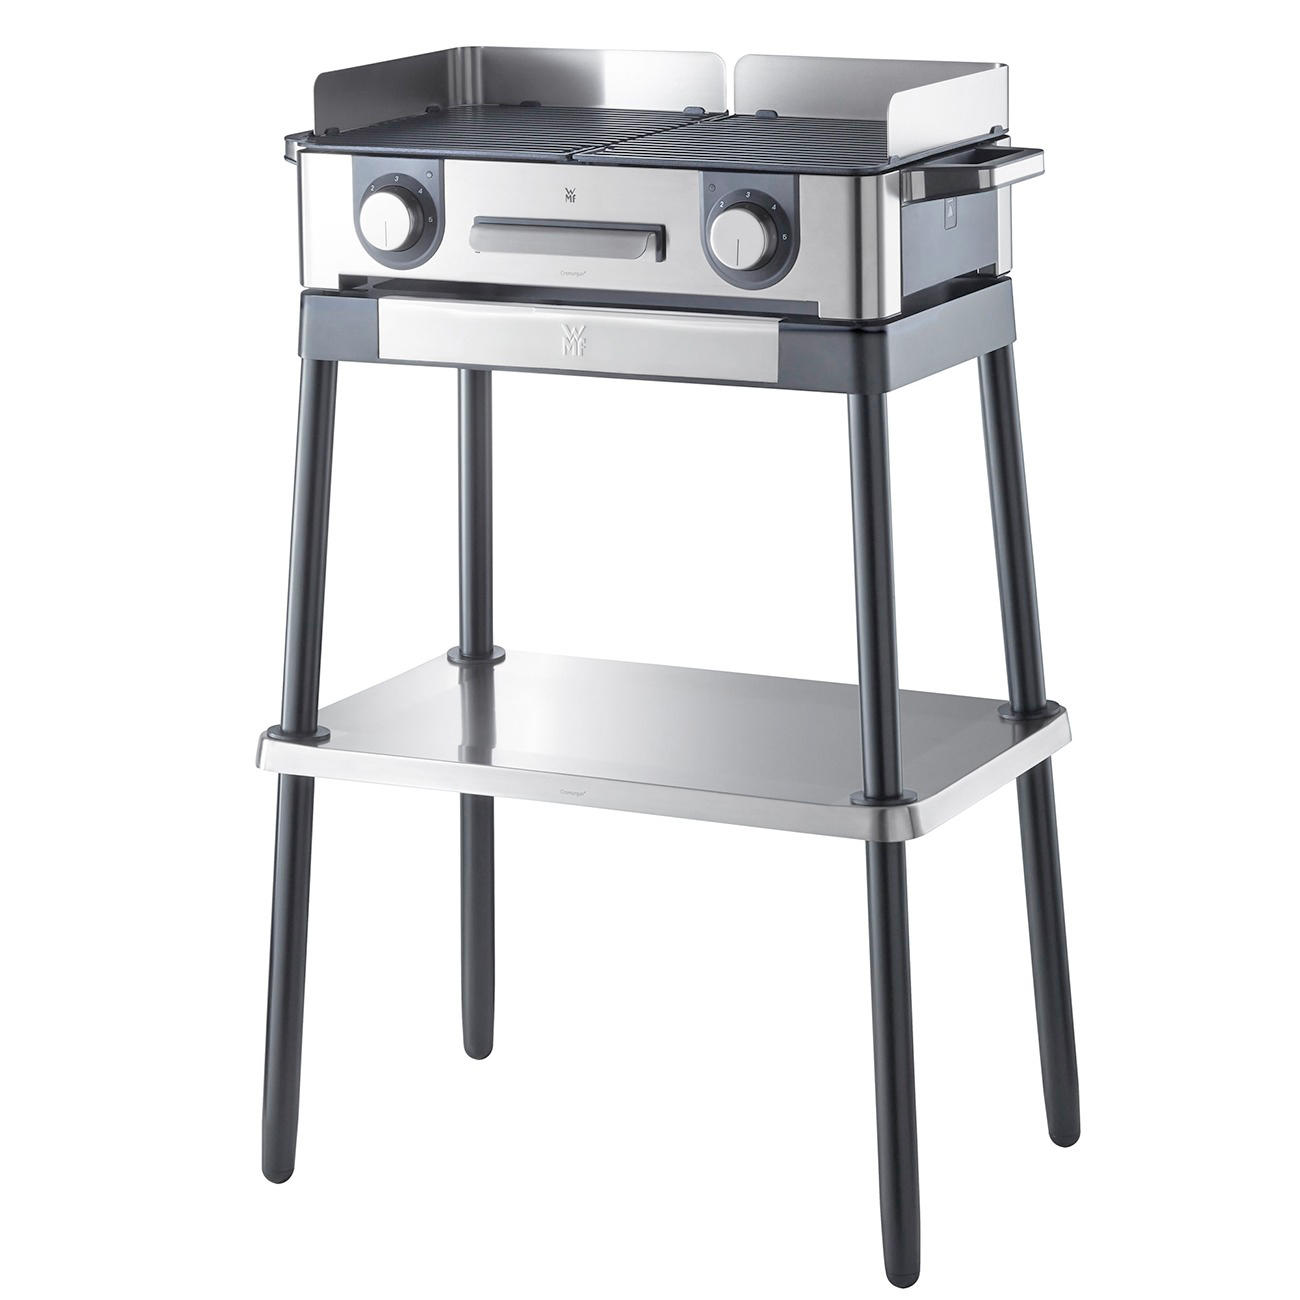 Wmf lono master grill barbecue elektrogrill kaufen for Tischgrill design